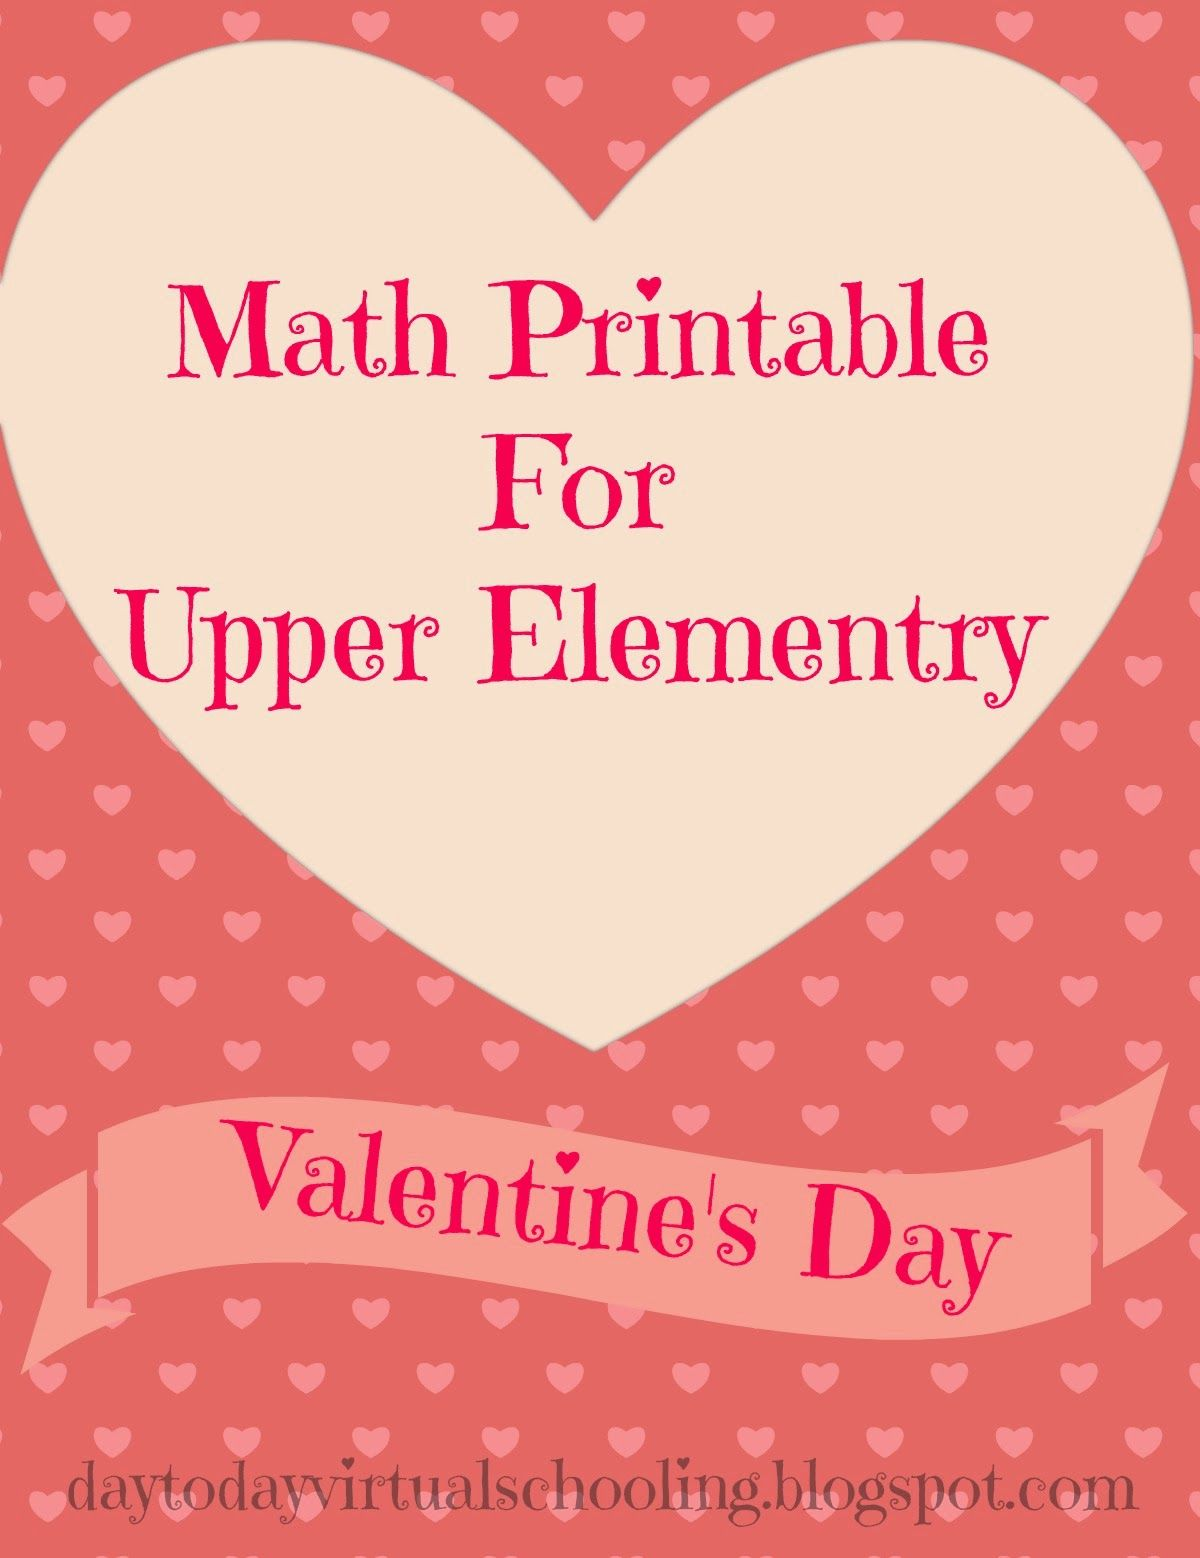 A Free Fun Math Worksheet For Upper Elementary Students